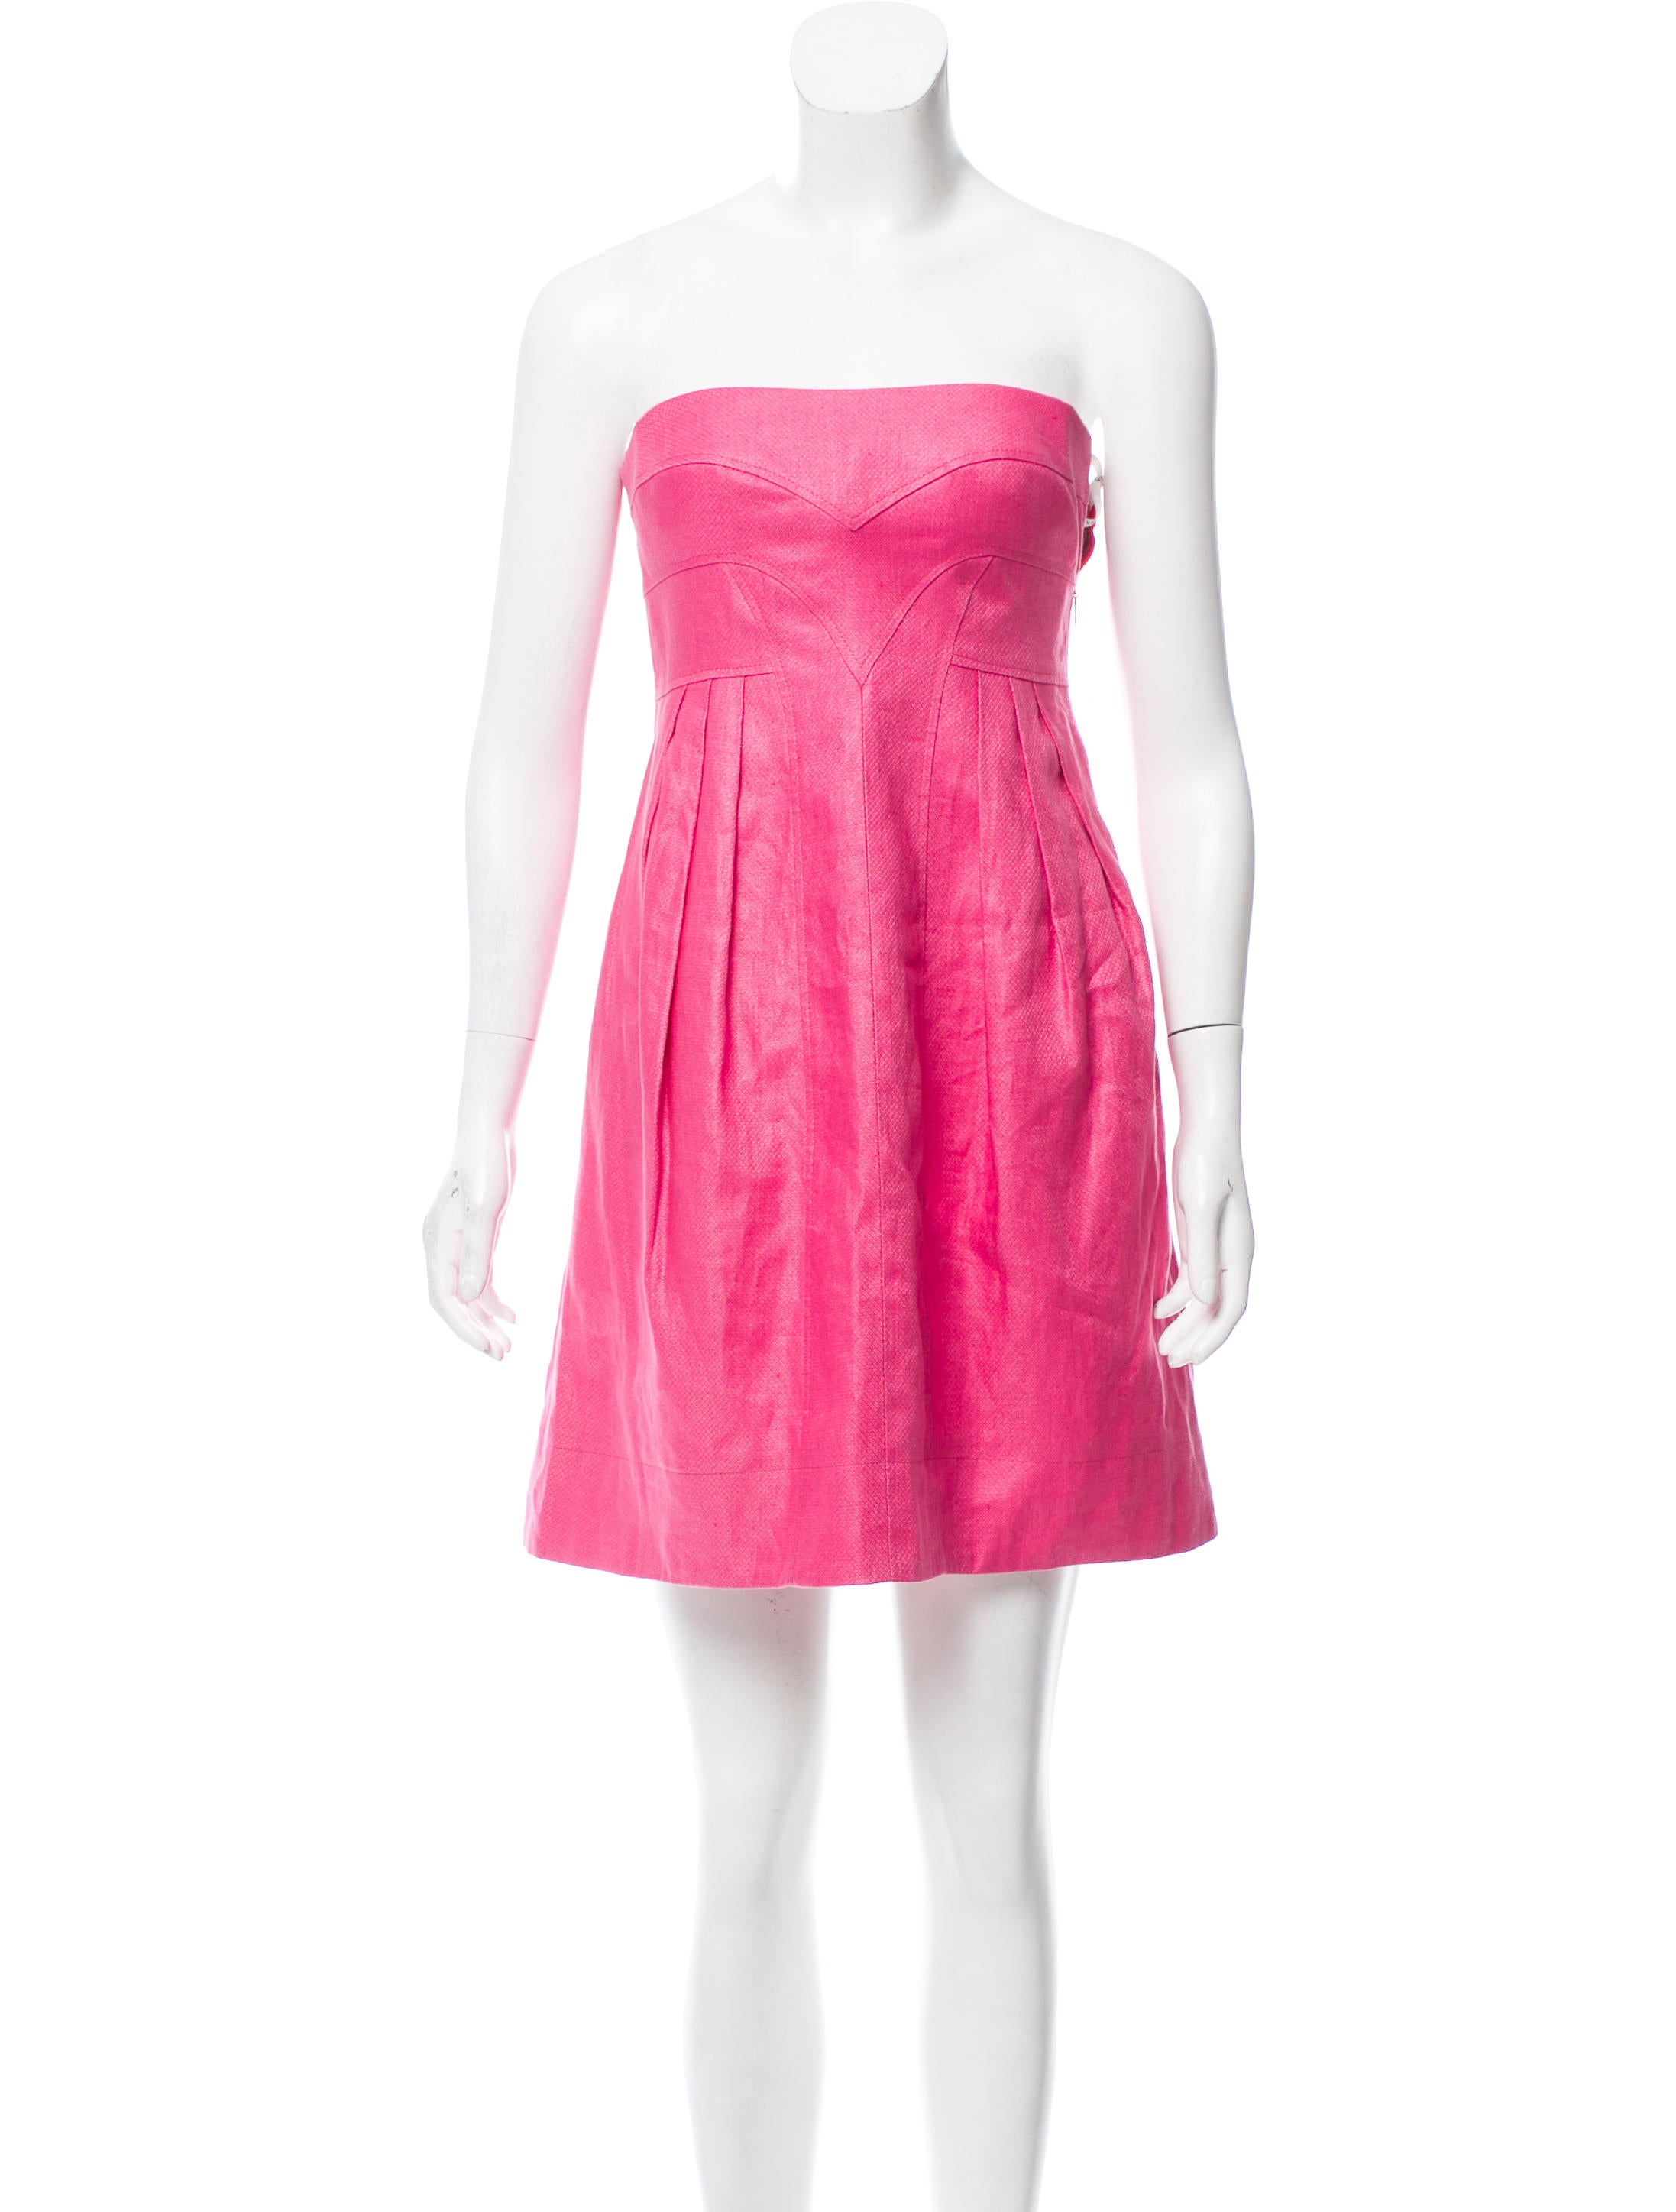 Versace Linen Strapless Dress - Clothing - VES33525 | The RealReal